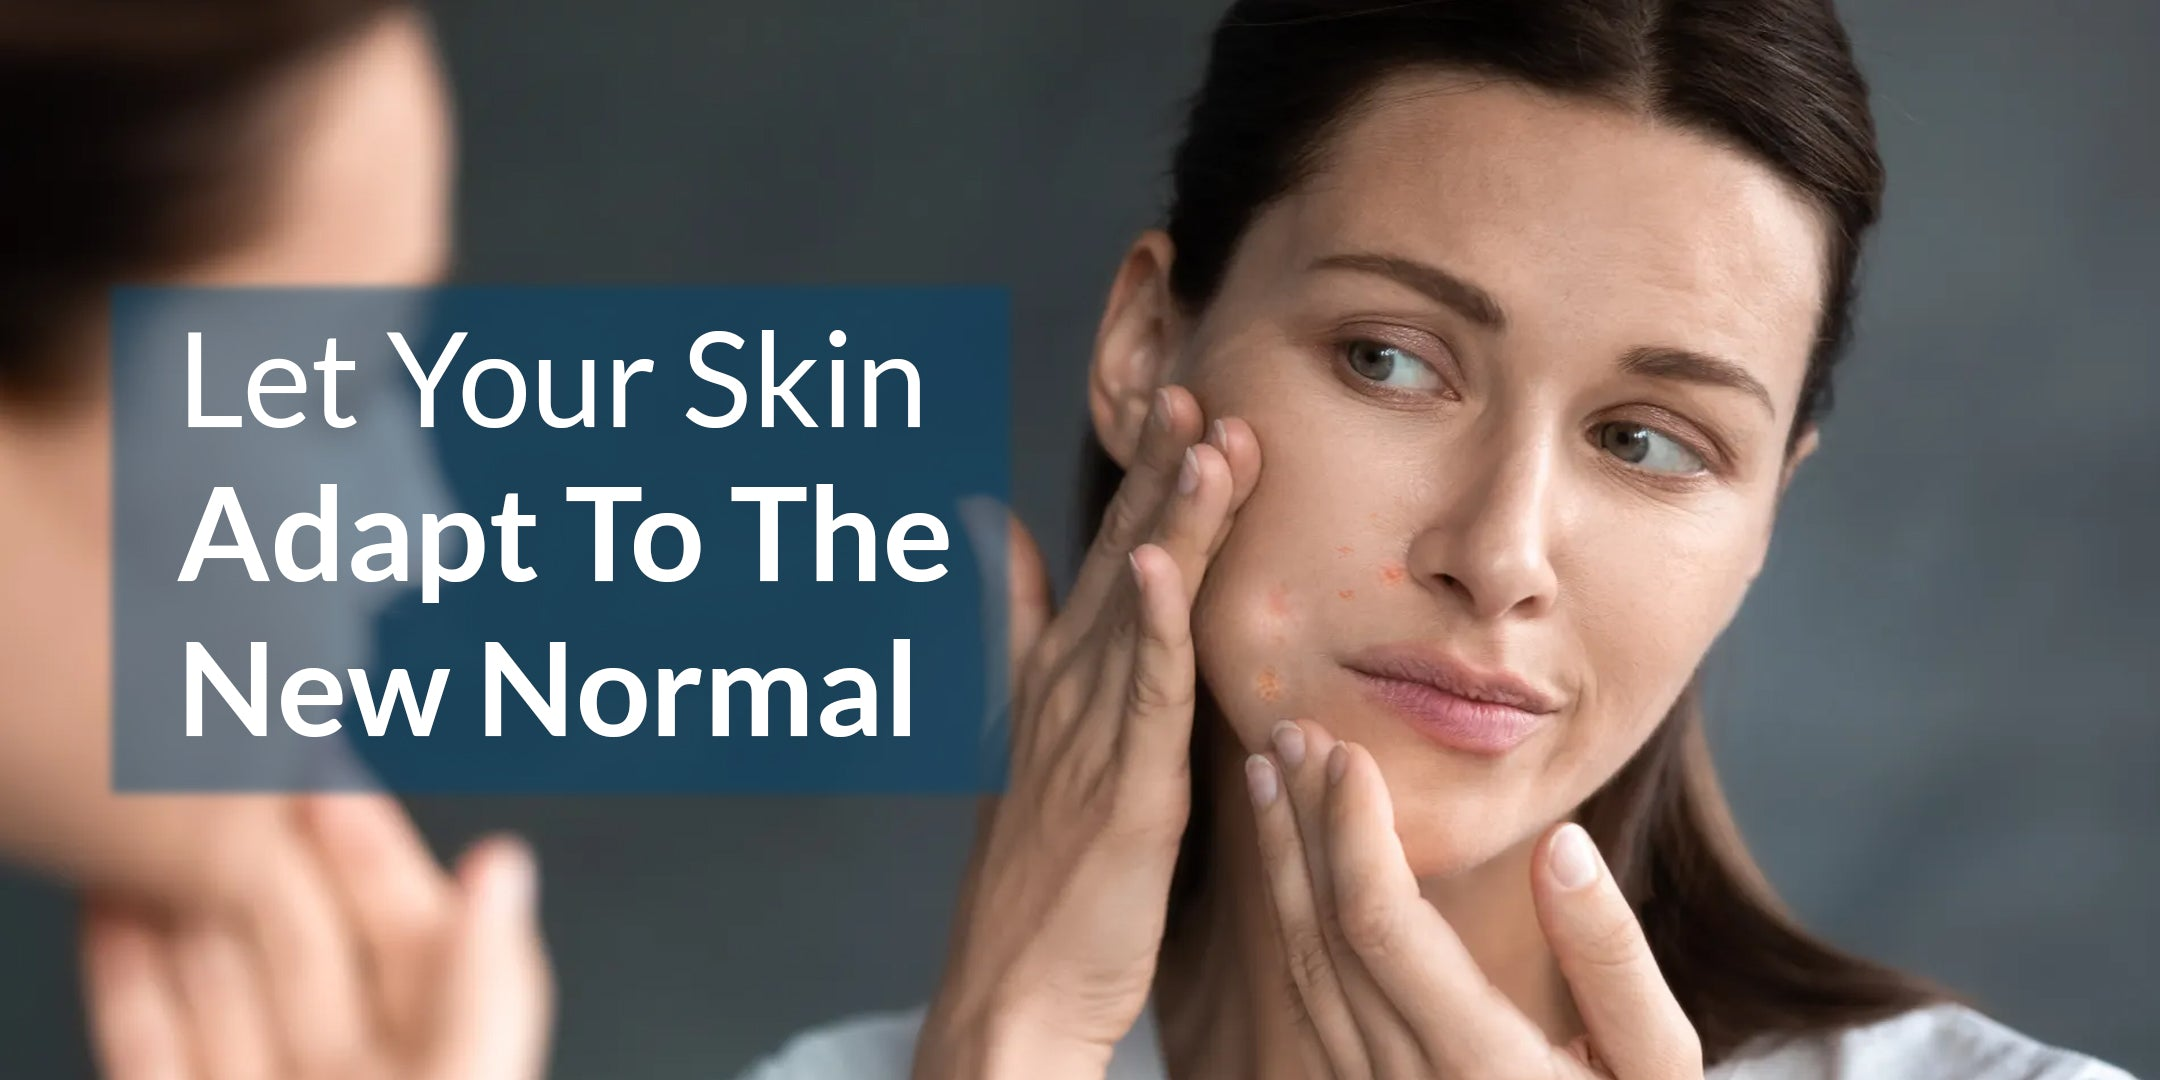 Let Your Skin Adapt To The New Normal